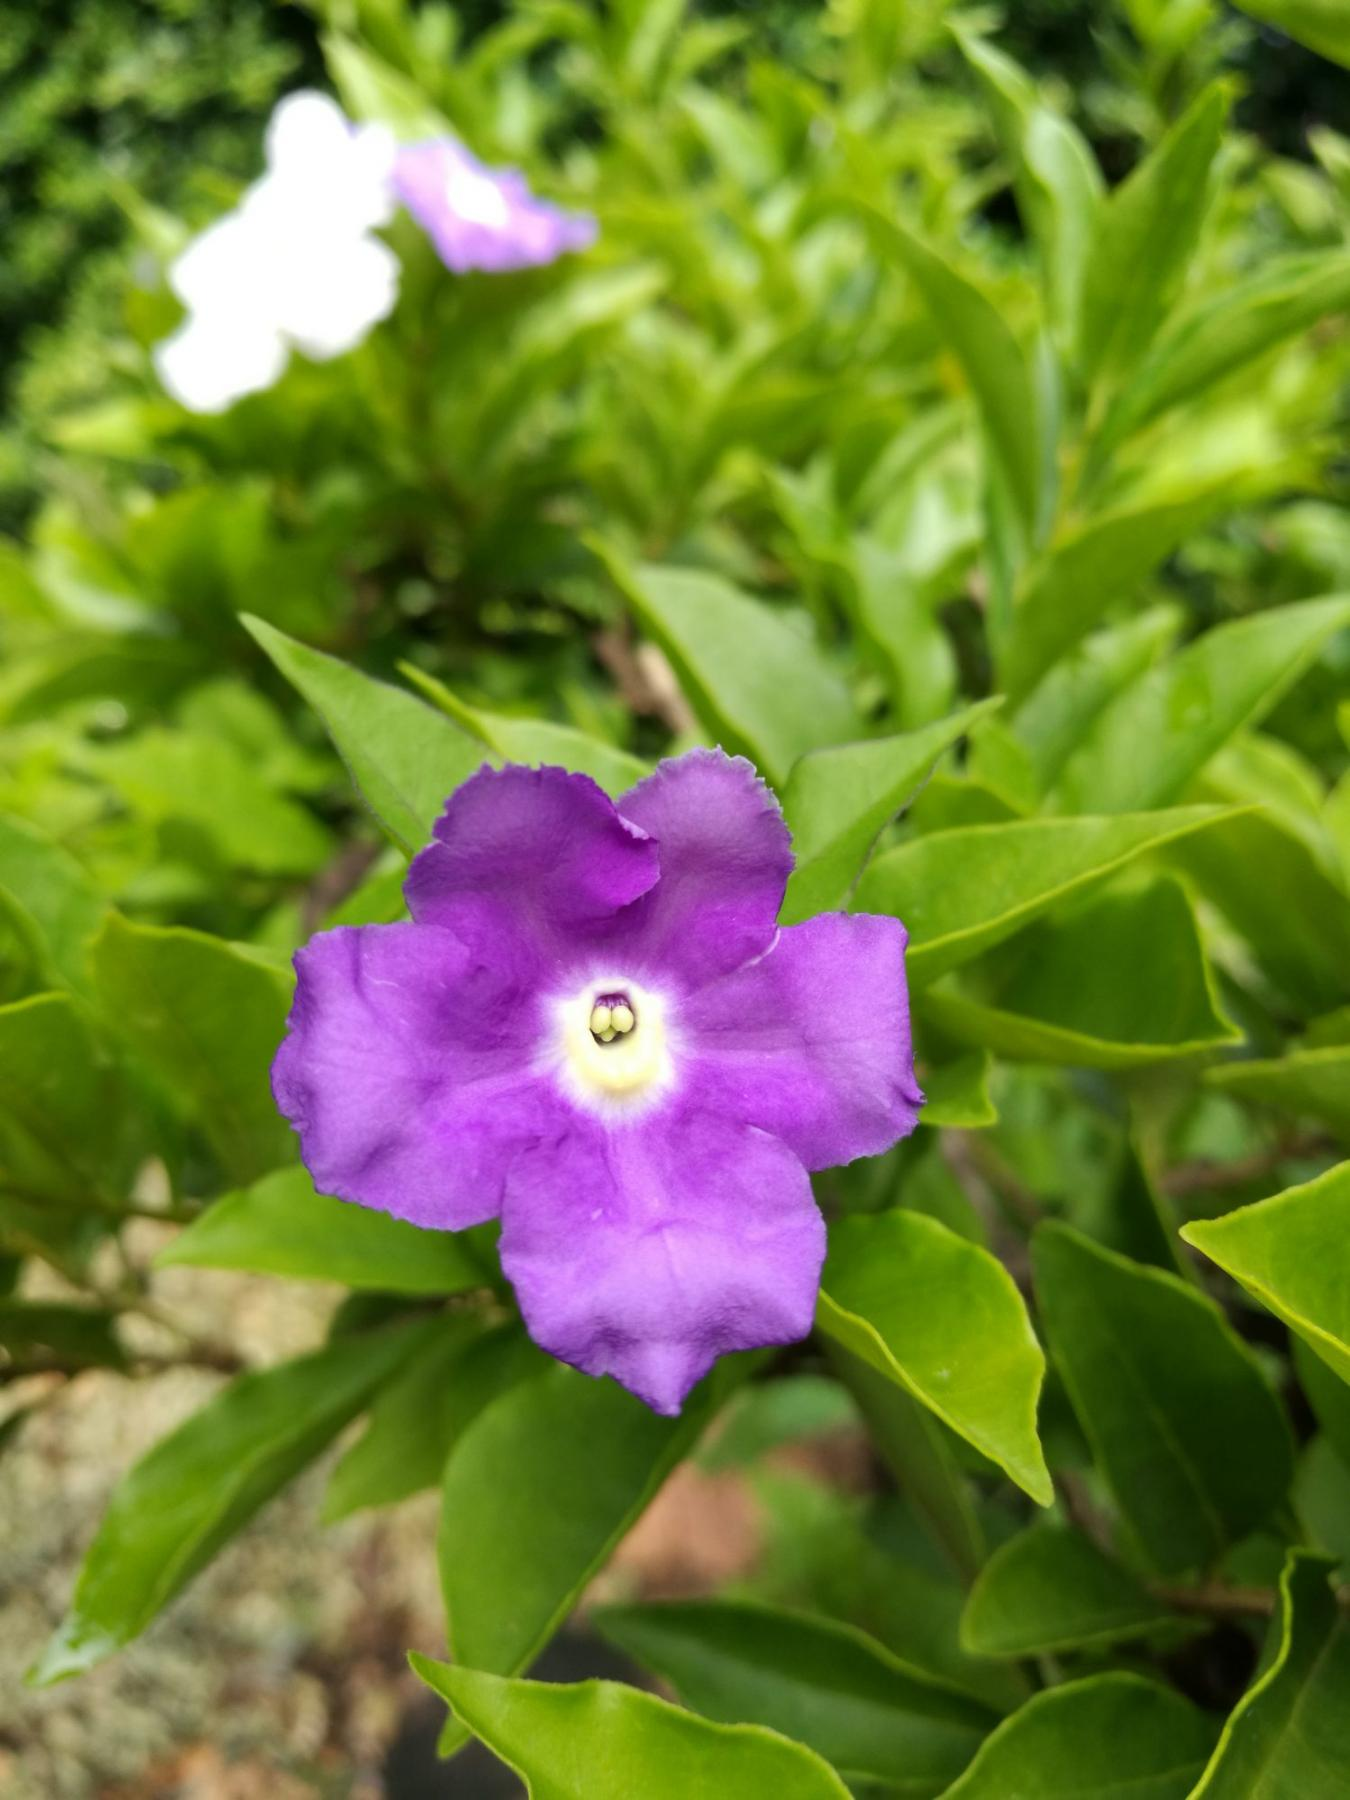 Toxic beauty: Brunfelsia sickens several Tri-Valley dogs